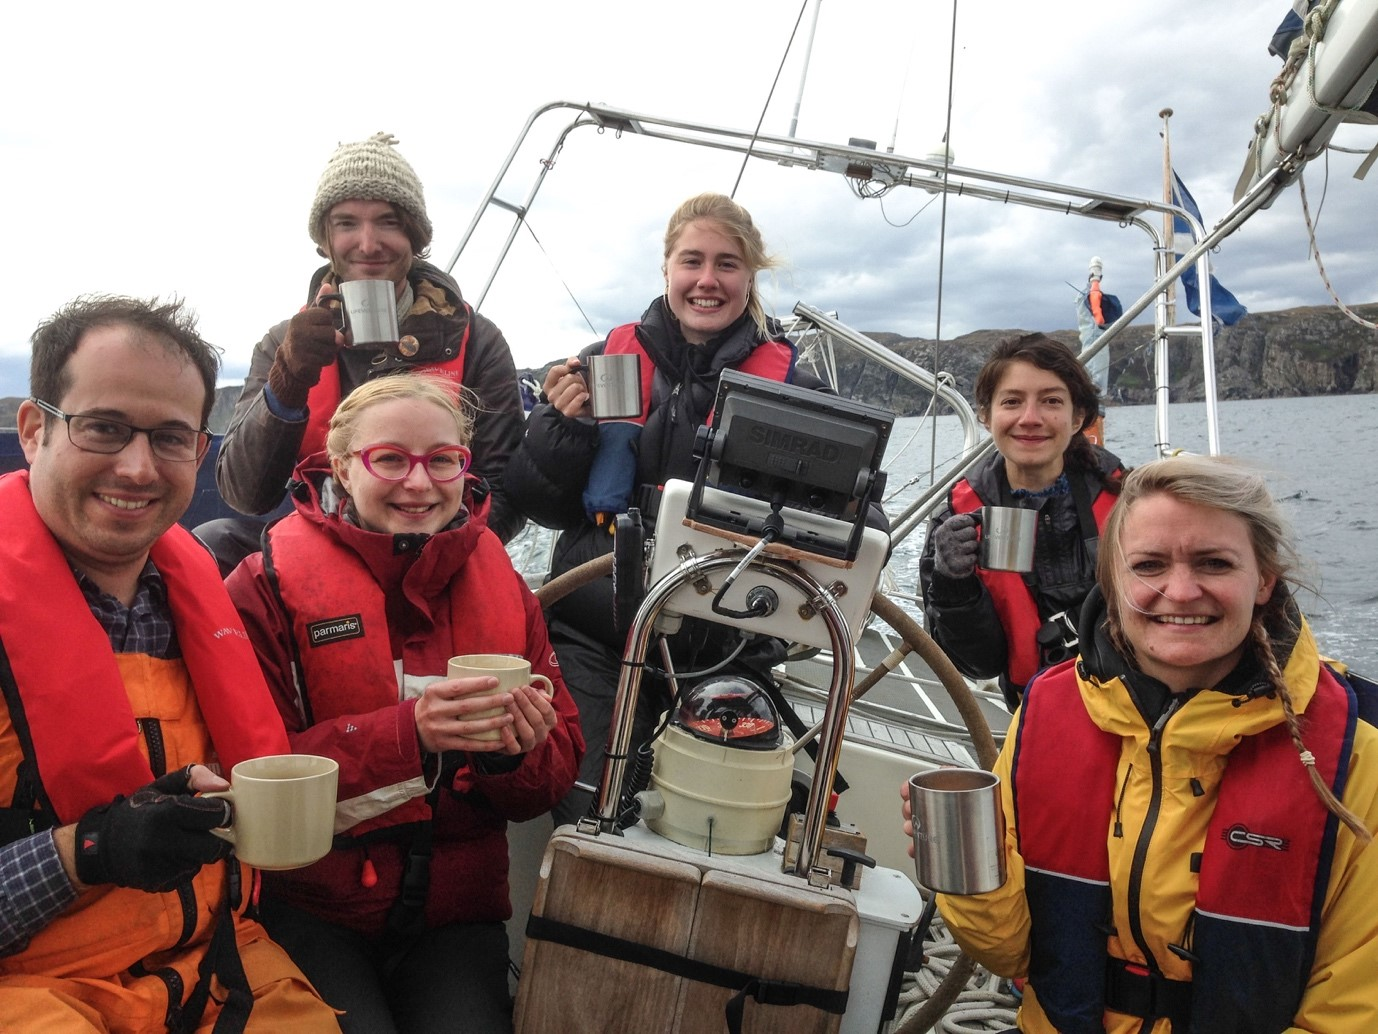 The Sail Britain crew in the Outer Hebrides